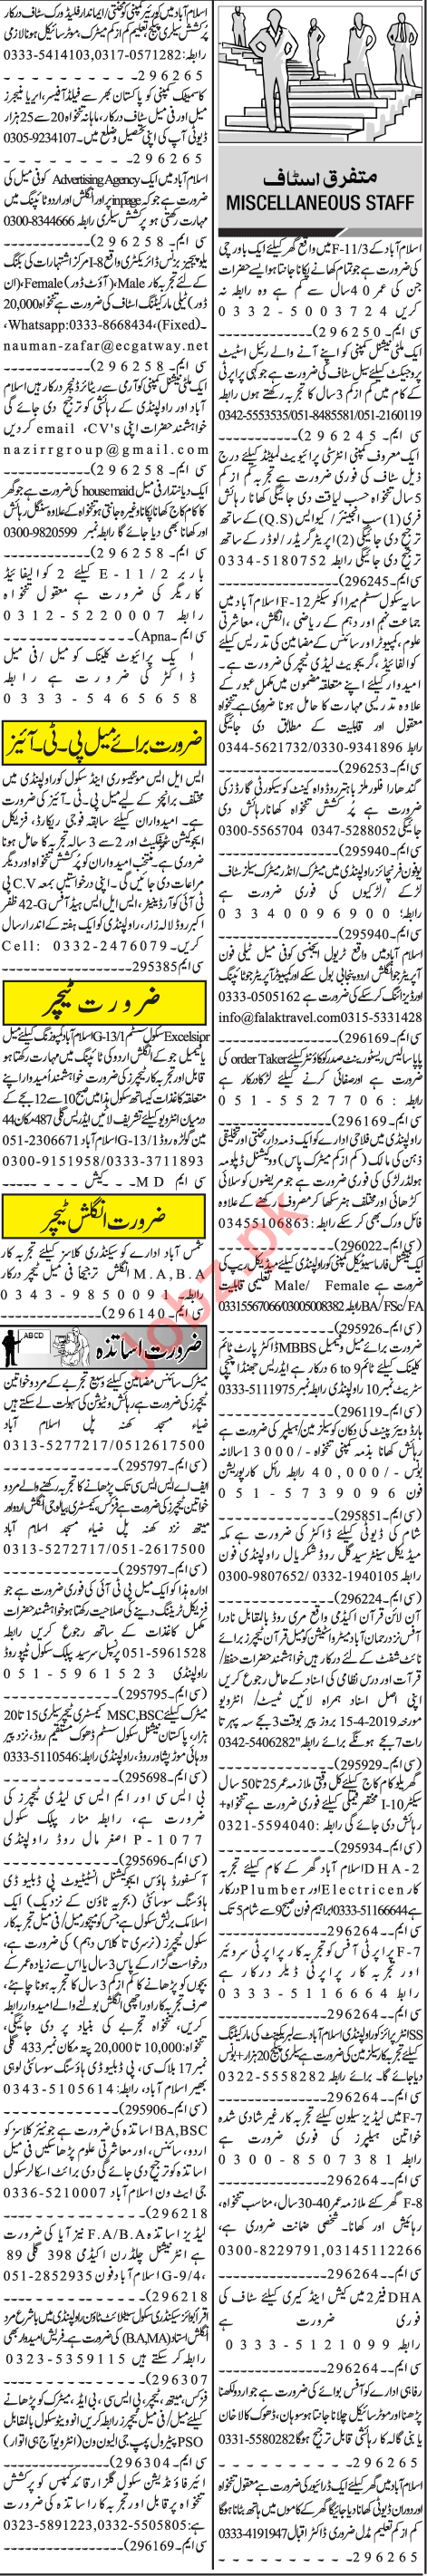 Jang Sunday Classified Ads 14th April 2019 for Miscellaneous